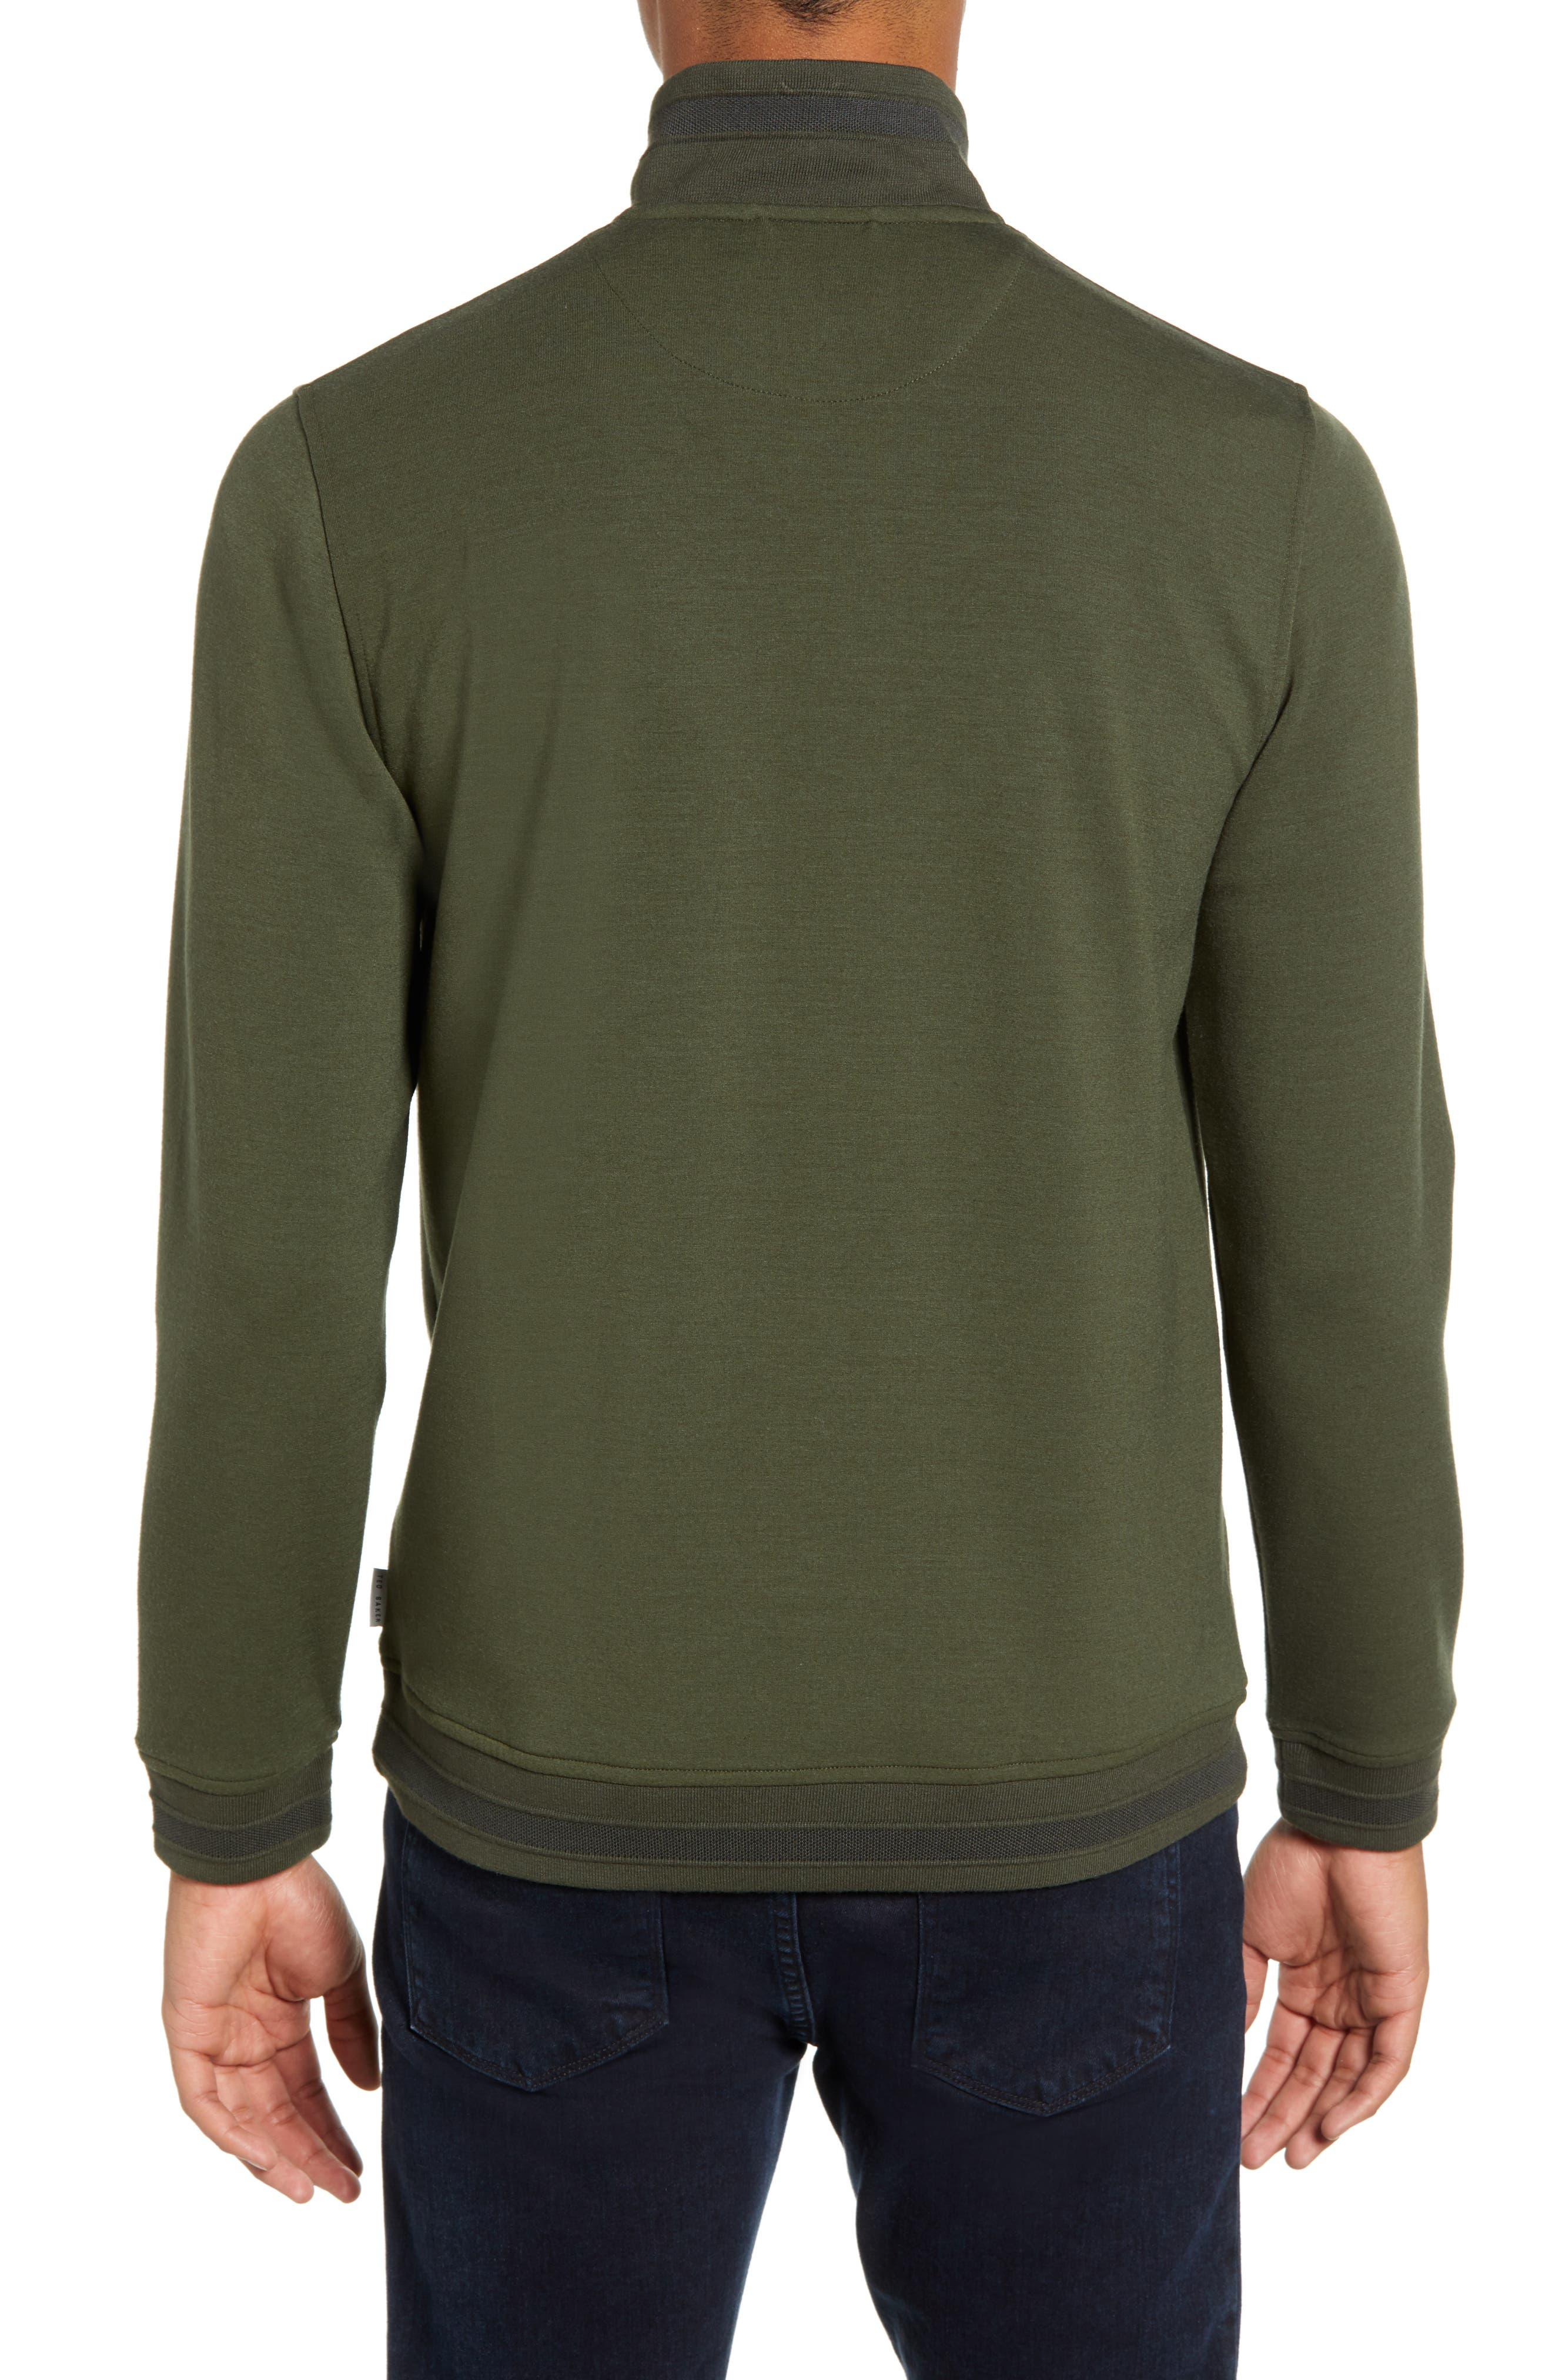 Leevit Quarter Zip Pullover,                             Alternate thumbnail 2, color,                             KHAKI